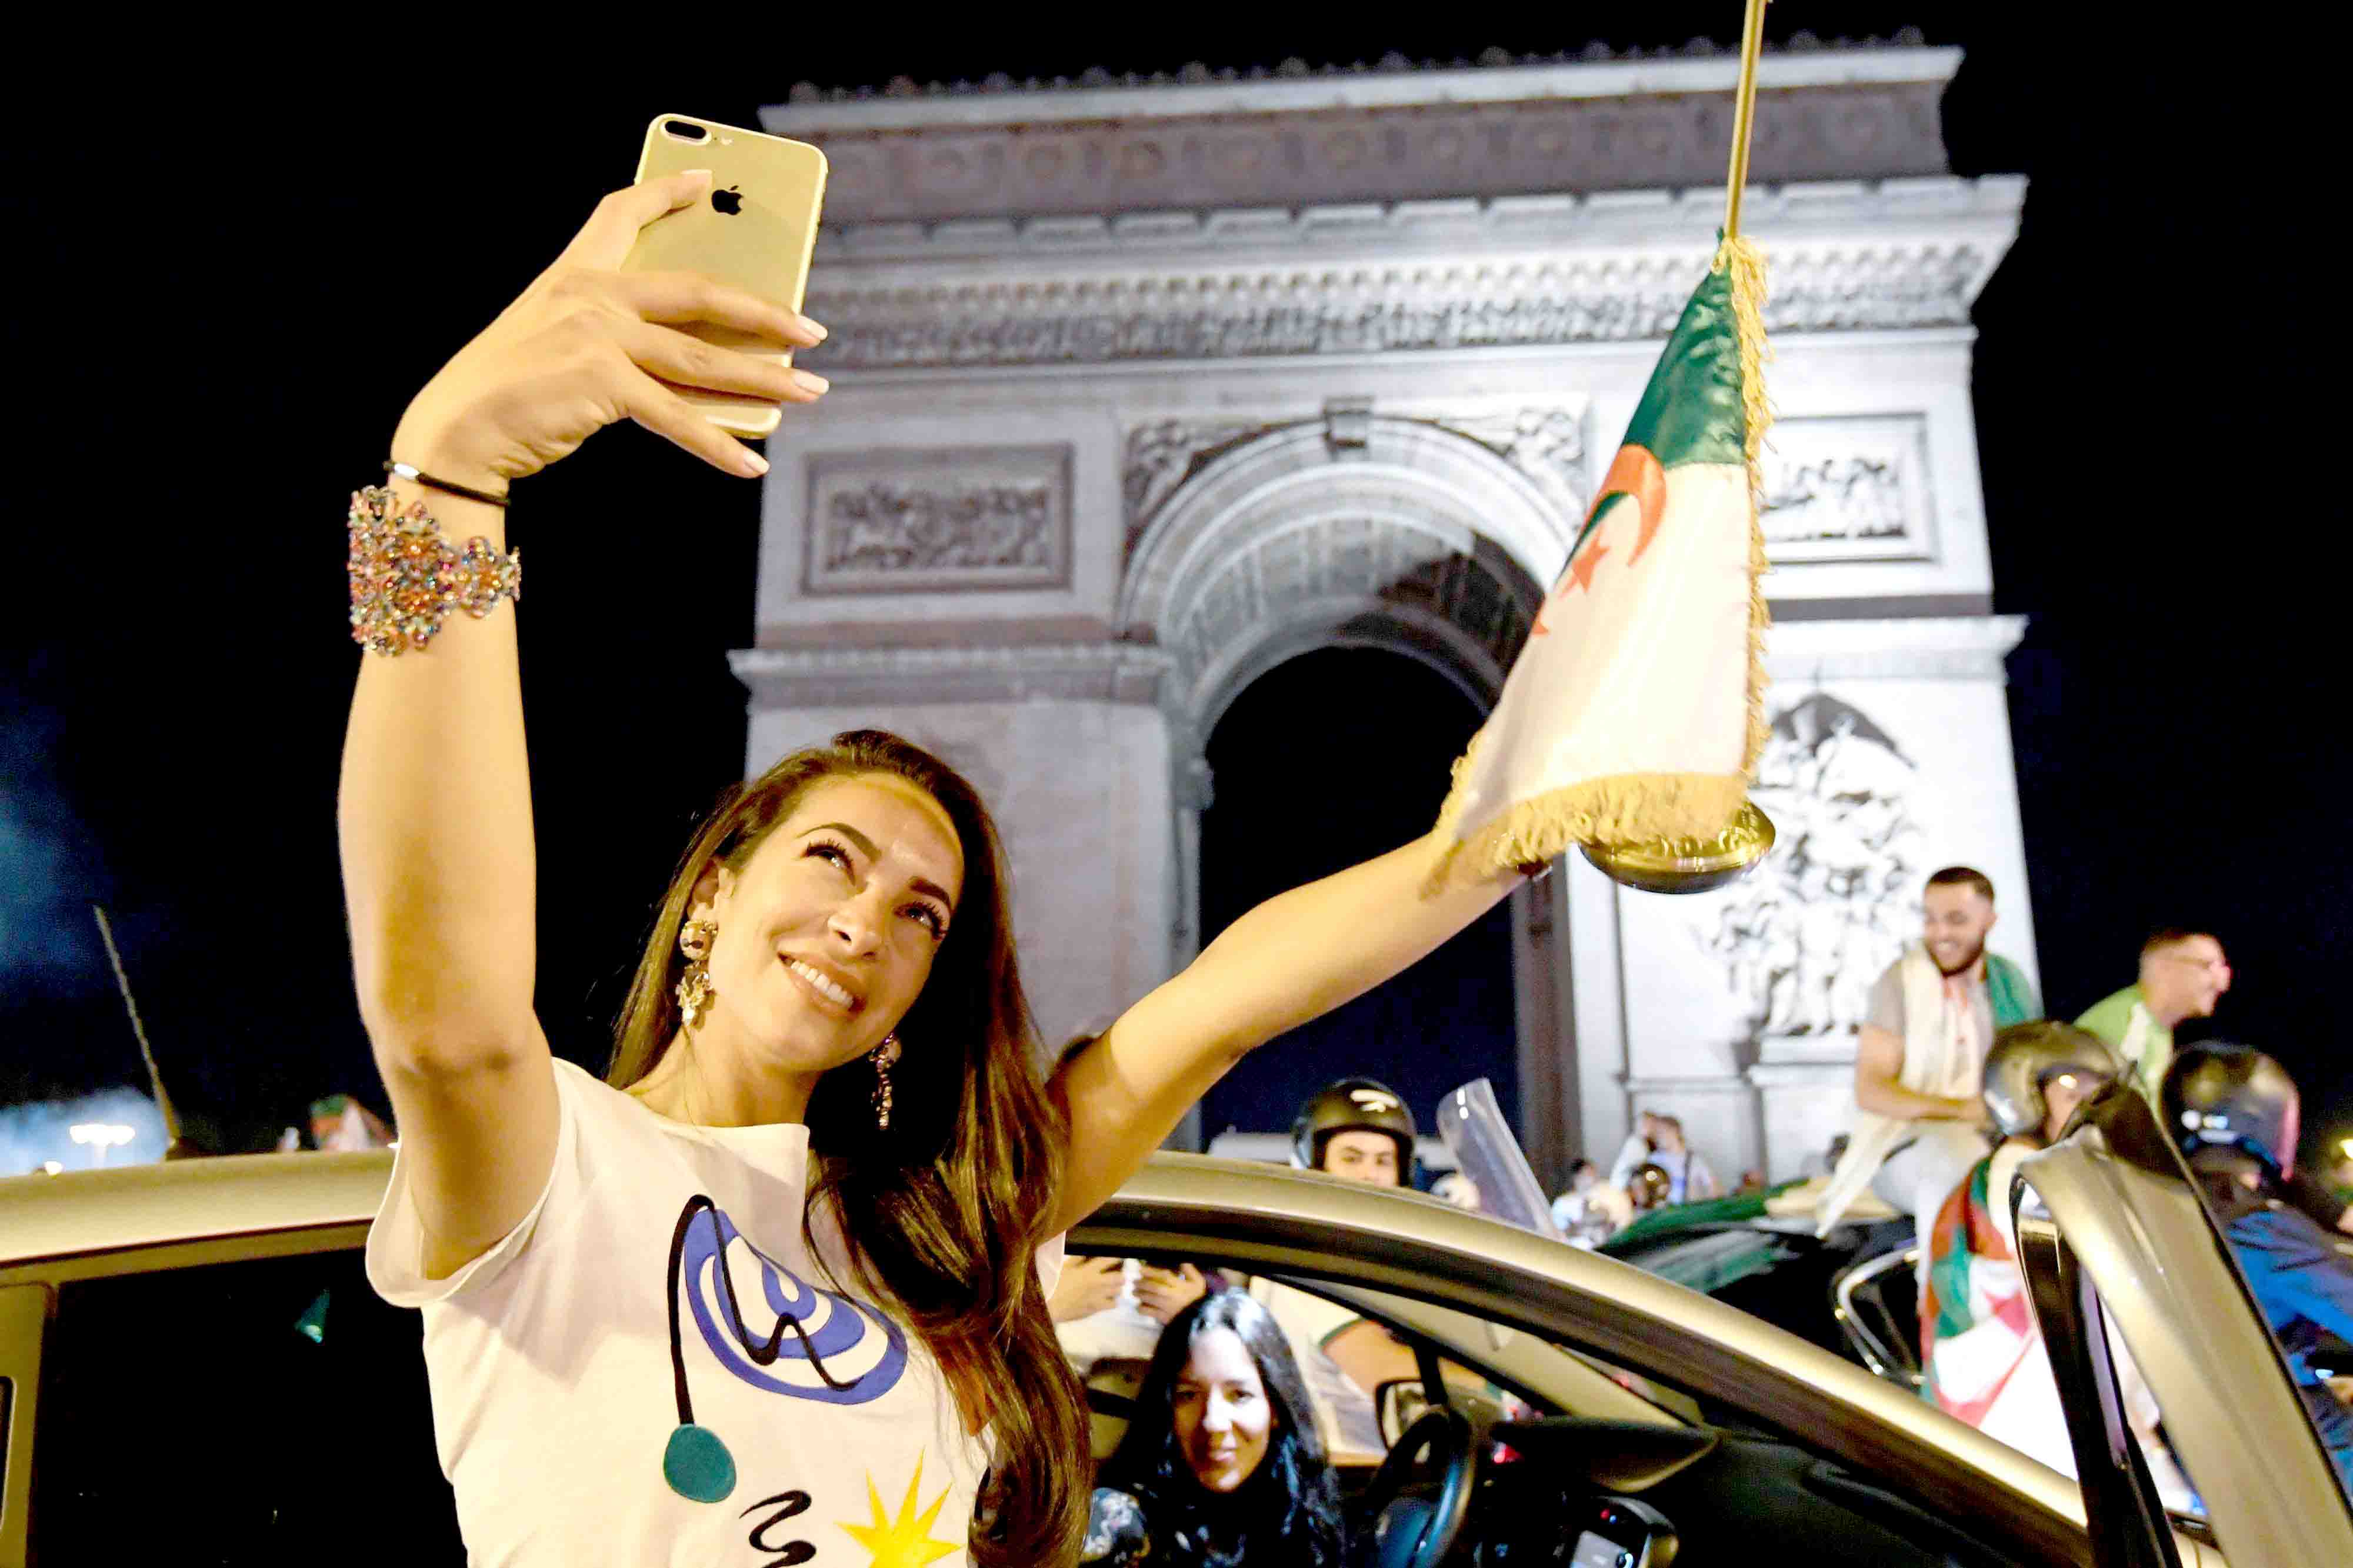 An Algerian supporter poses for a selfie with the Algerian national flag in front of the Arc de Triomphe as she celebrates on the Champs Elysees Avenue in Paris after Algeria won the 2019 Africa Cup of Nations final, July 19. (AFP)